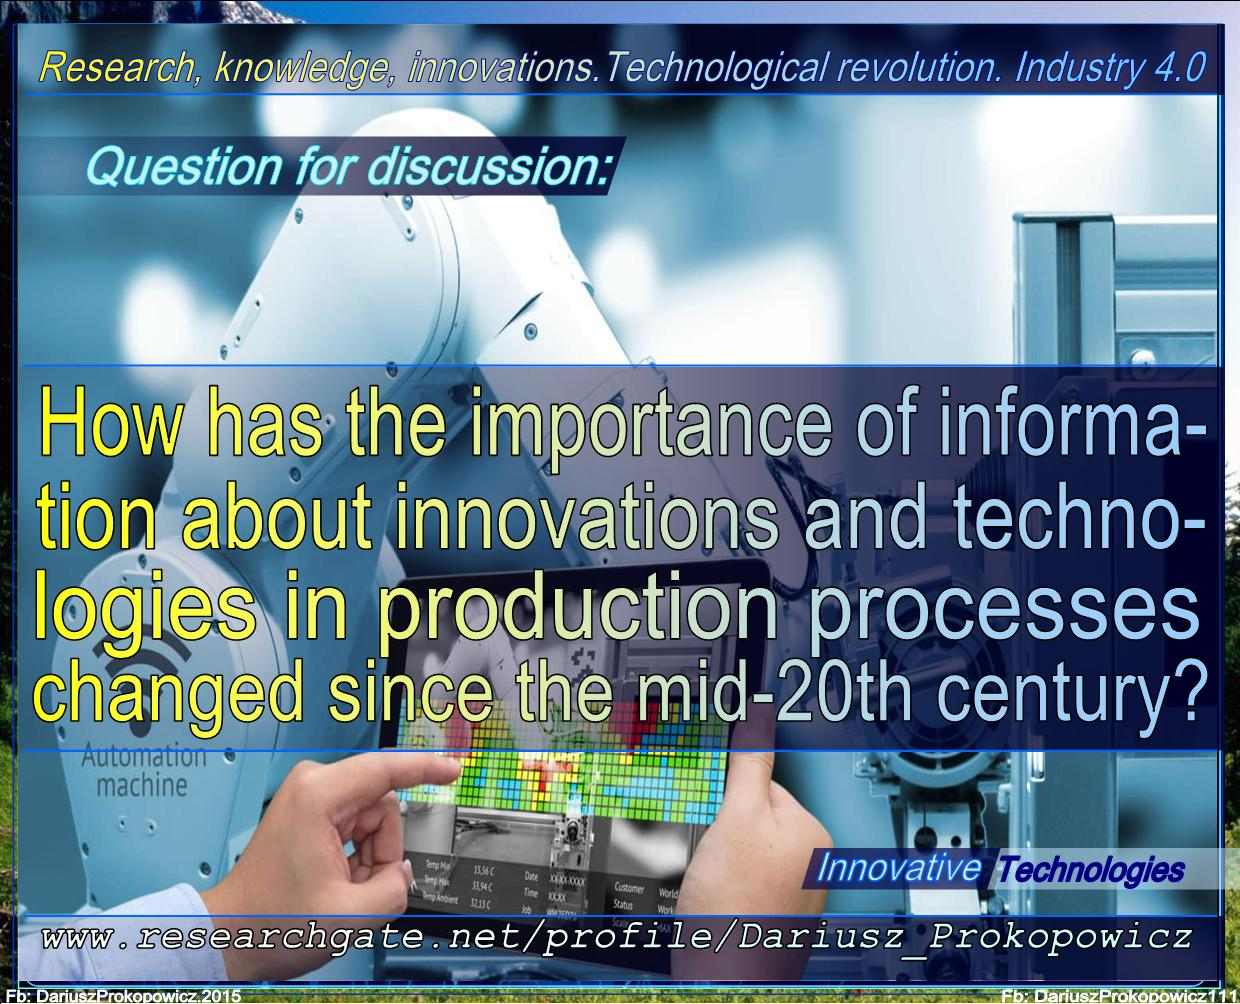 015 Research Paper 20th Century European History Topics Discussion D Prokopowicz Howhastheimportanceofinformationaboutinnovationsandtechnologiesinproduction Since Magnificent Full